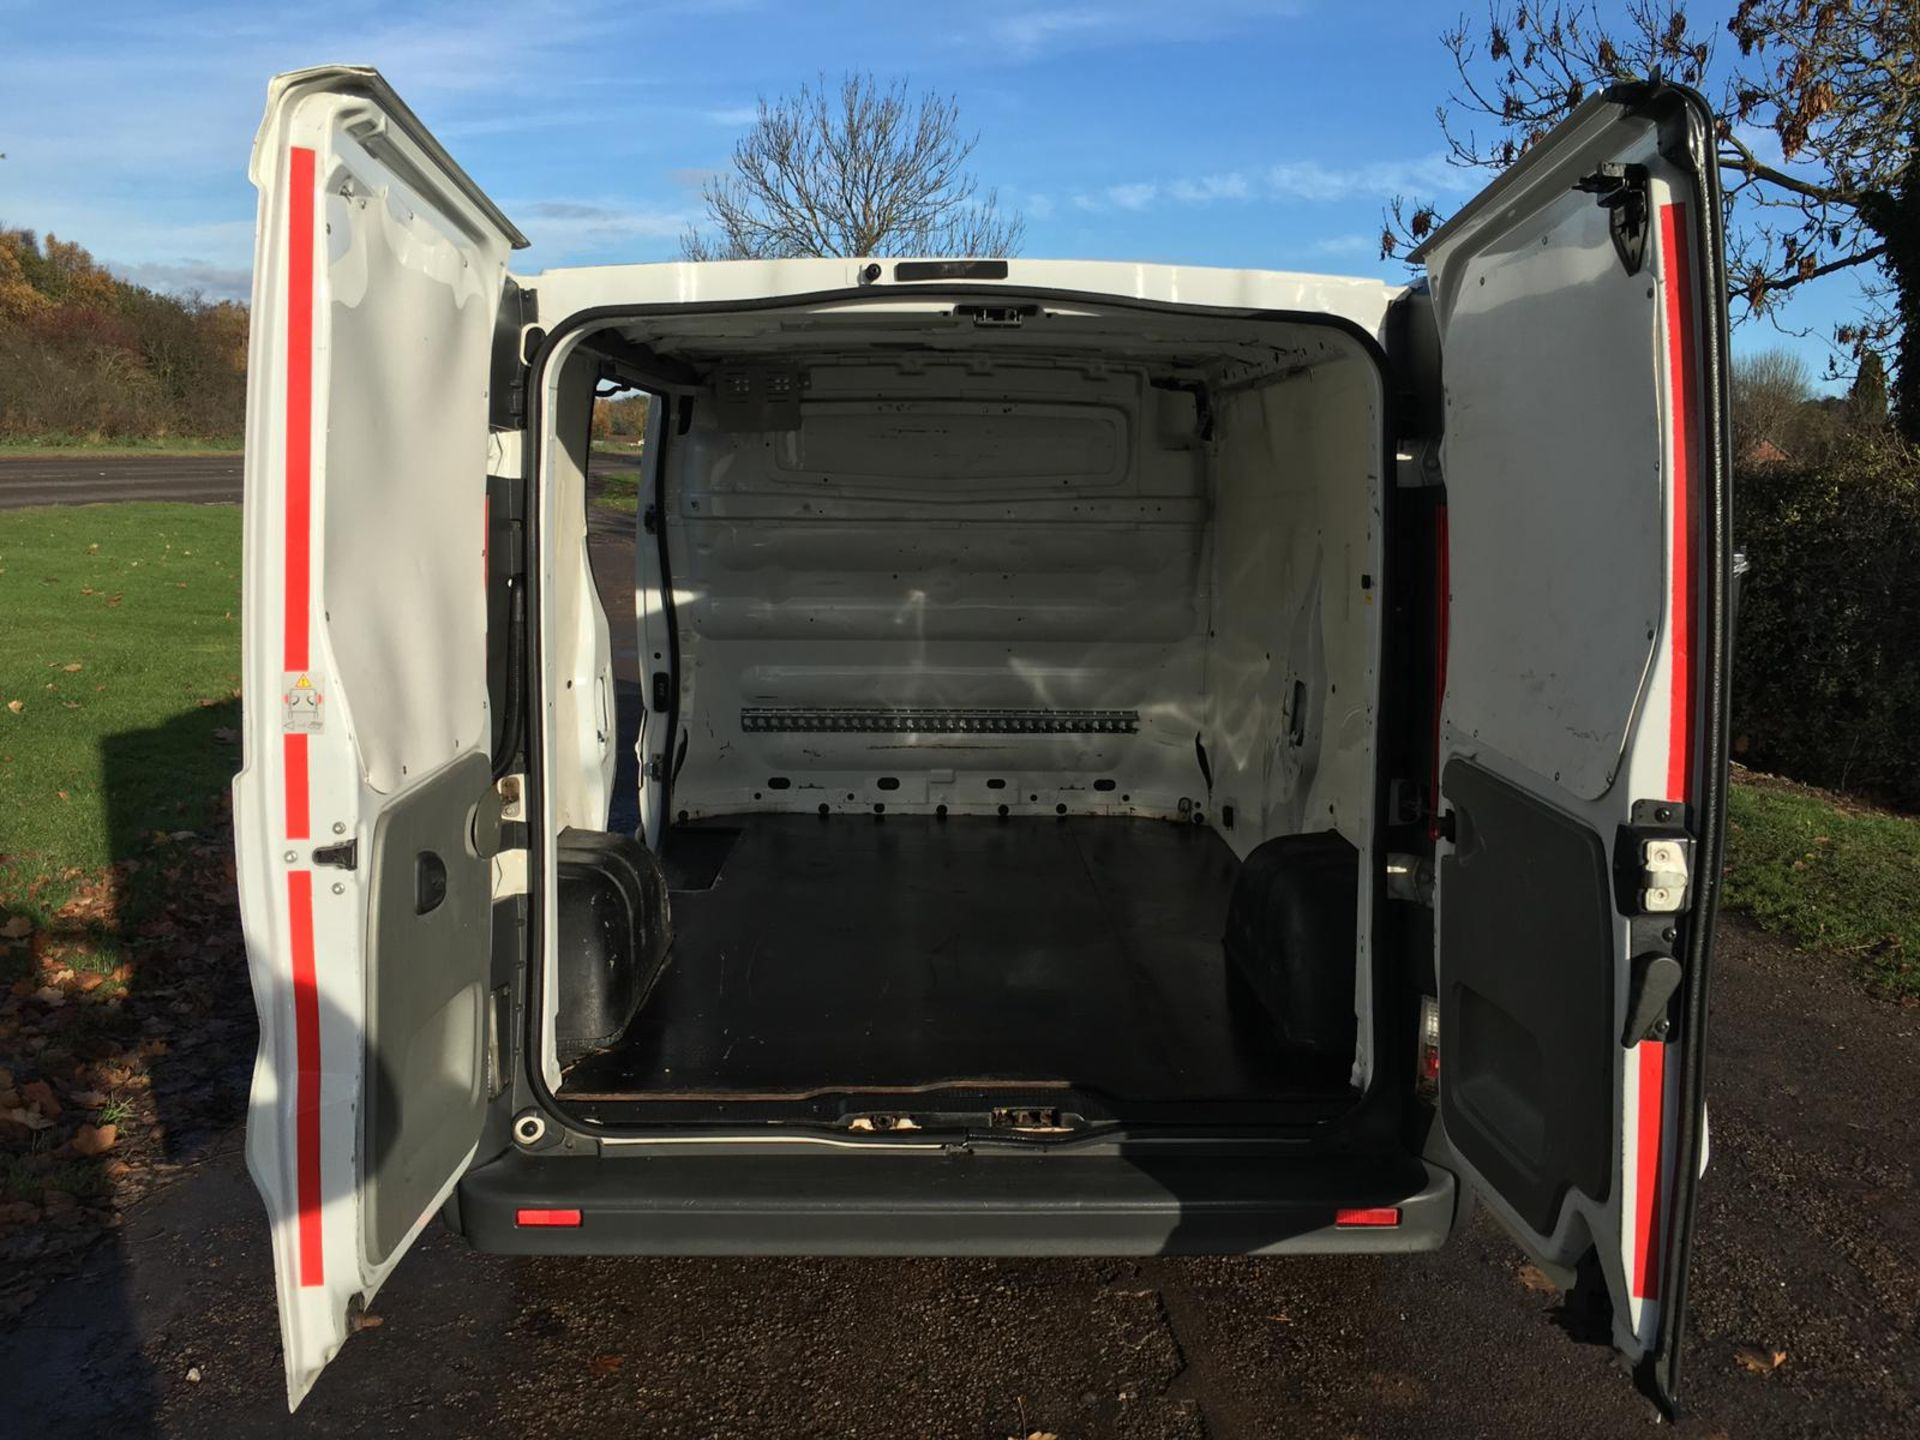 2008/58 REG VAUXHALL VIVARO 2900 CDTI SWB 2.0 DIESEL WHITE PANEL VAN, SHOWING 1 FORMER KEEPER - Image 6 of 12